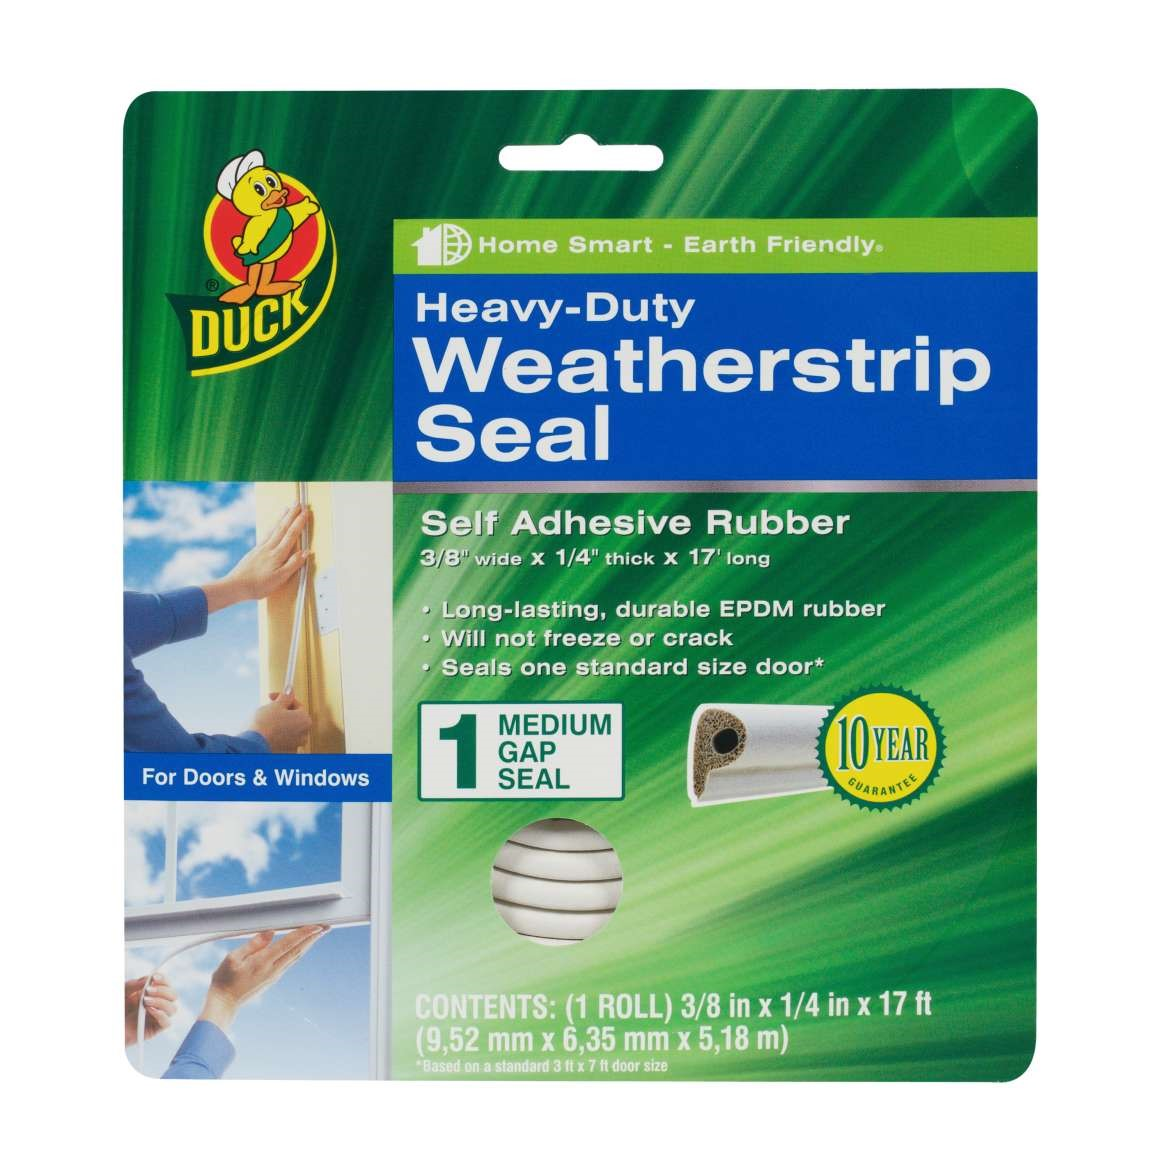 Duck Brand Heavy-Duty Weatherstrip Seal for Medium Gaps, .38 in. x .25 in. x 17 ft.